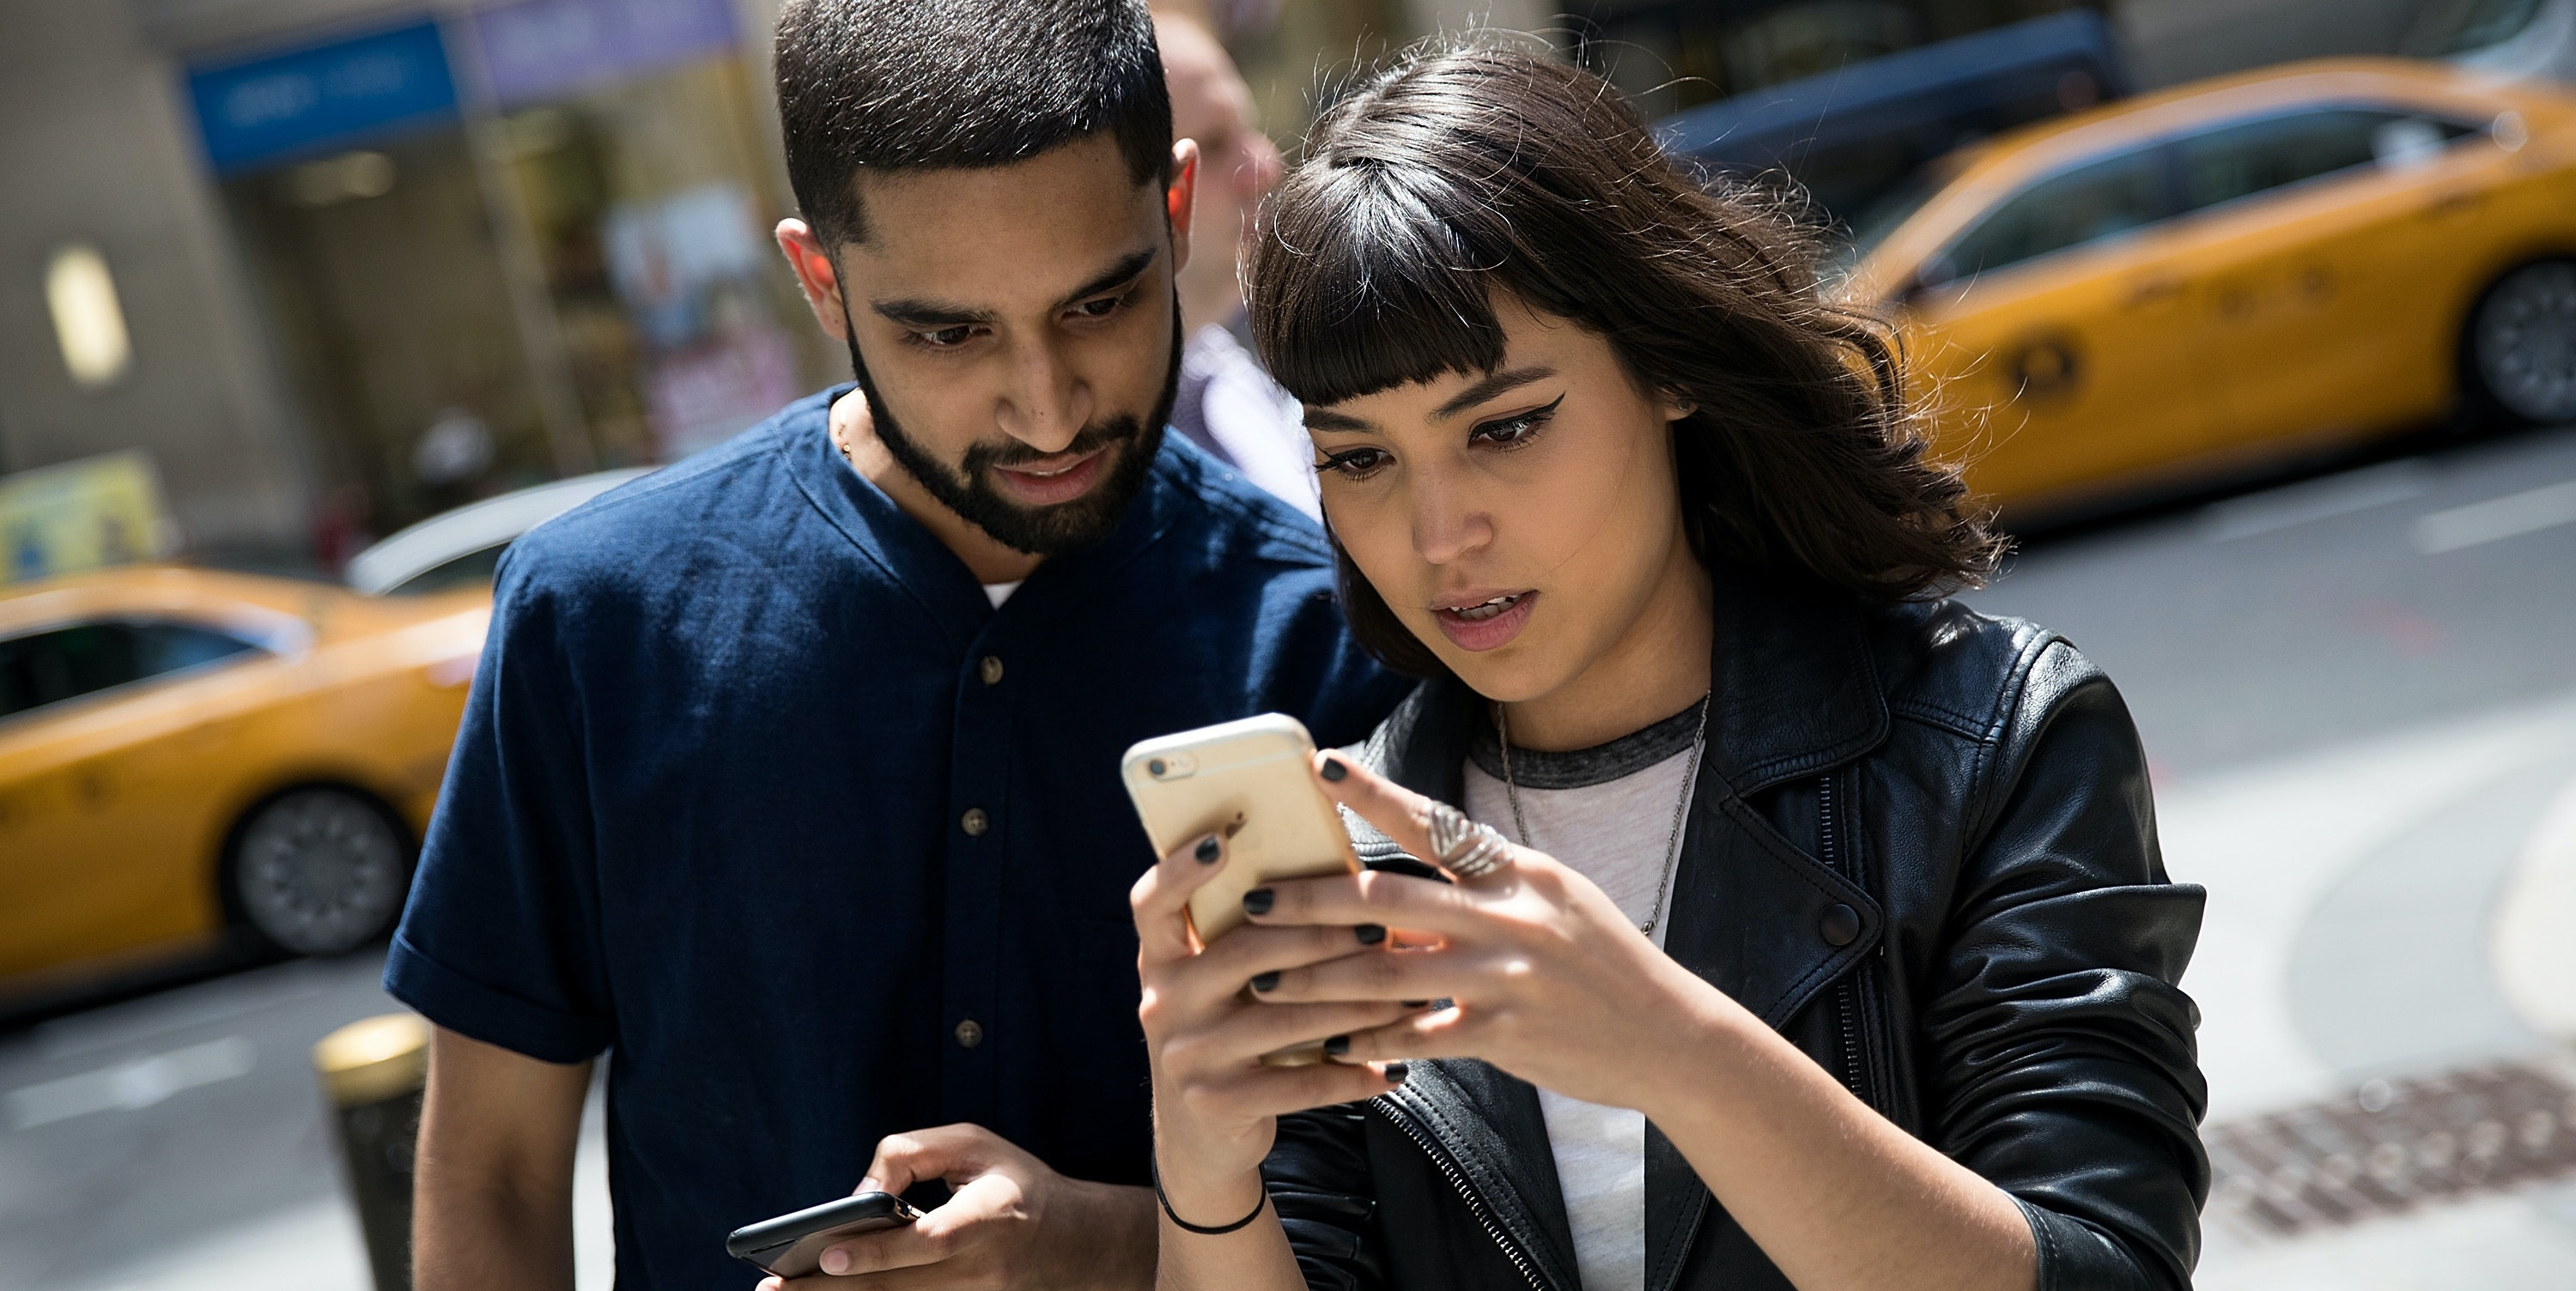 NEW YORK, NY - JULY 11: (L to R) Sameer Uddin and Michelle Macias play Pokemon Go on their smartphones outside of Nintendo's flagship store, July 11, 2016 in New York City.  The success of Nintendo's new smartphone game, Pokemon Go, has sent shares of Nintendo soaring. (Photo by Drew Angerer/Getty Images)